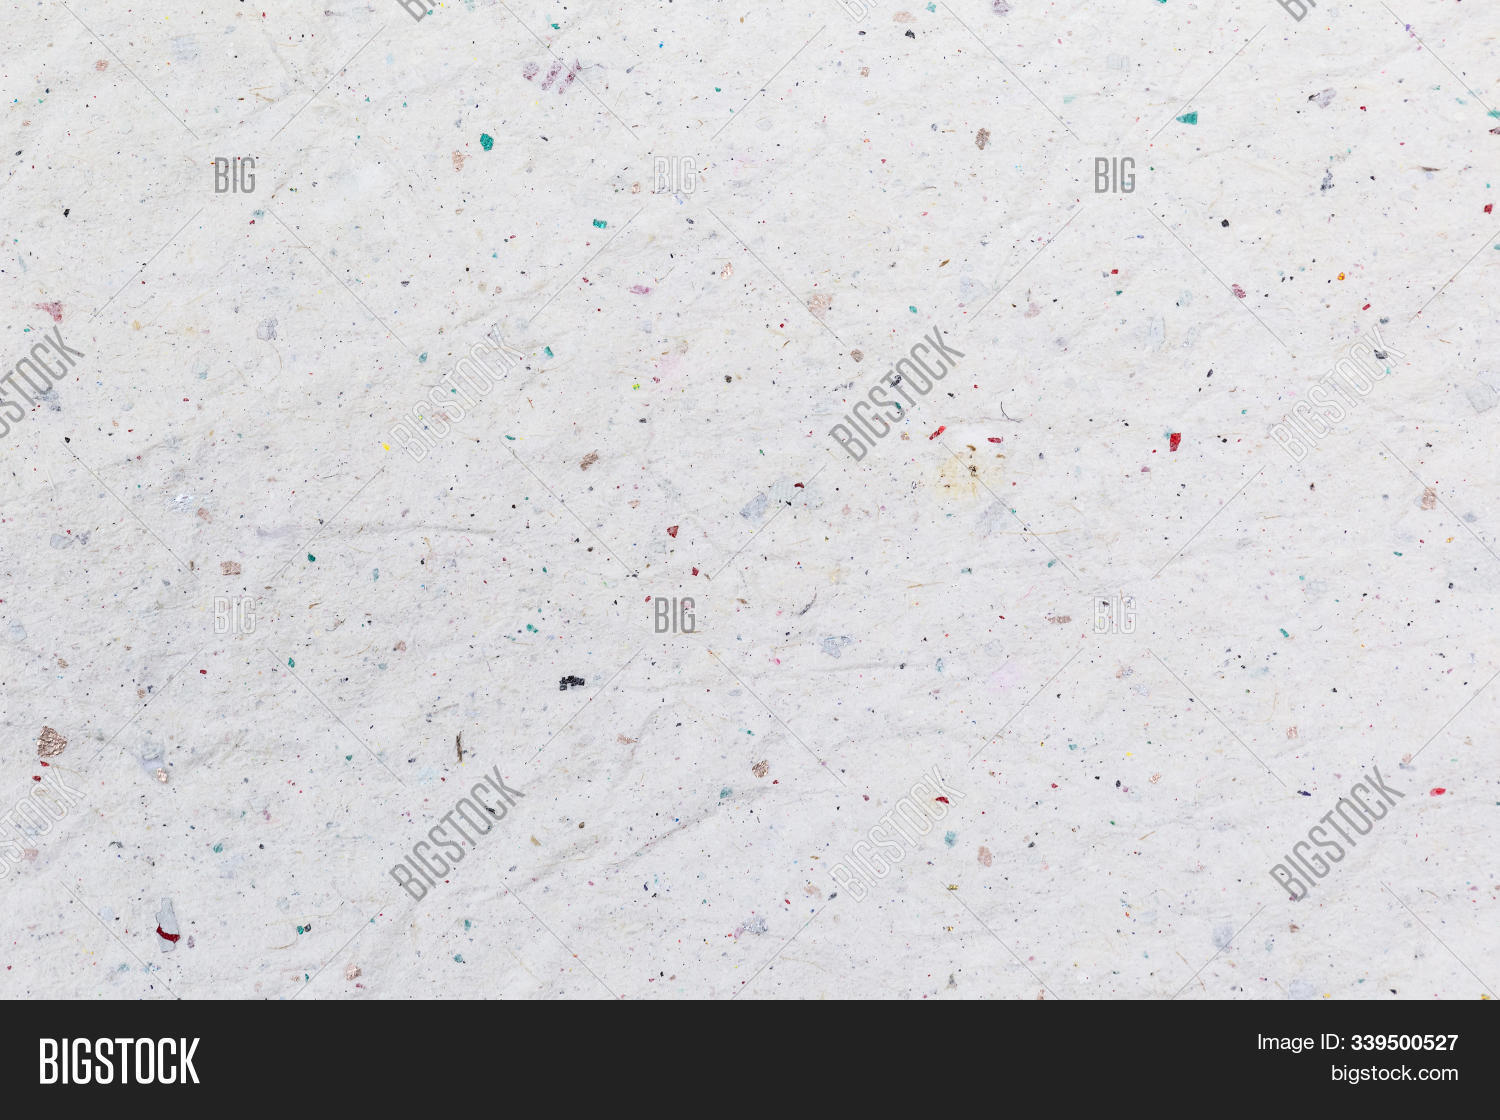 Abstract,abstract-background,ancient,art,backdrop,background,black,blank,bright,canvas,card,cement,christmas,clean,color,copy,cover,decoration,design.,dirty,frame,grain,grunge,line,manuscript,nature,new,old,page,paper,paper-background,parchment,pattern-background,retro,scrapbook,sheet,stained,text,texture,texture-background,textured,vintage,wall,wallpaper,watercolor,web-background,white,wrinkled